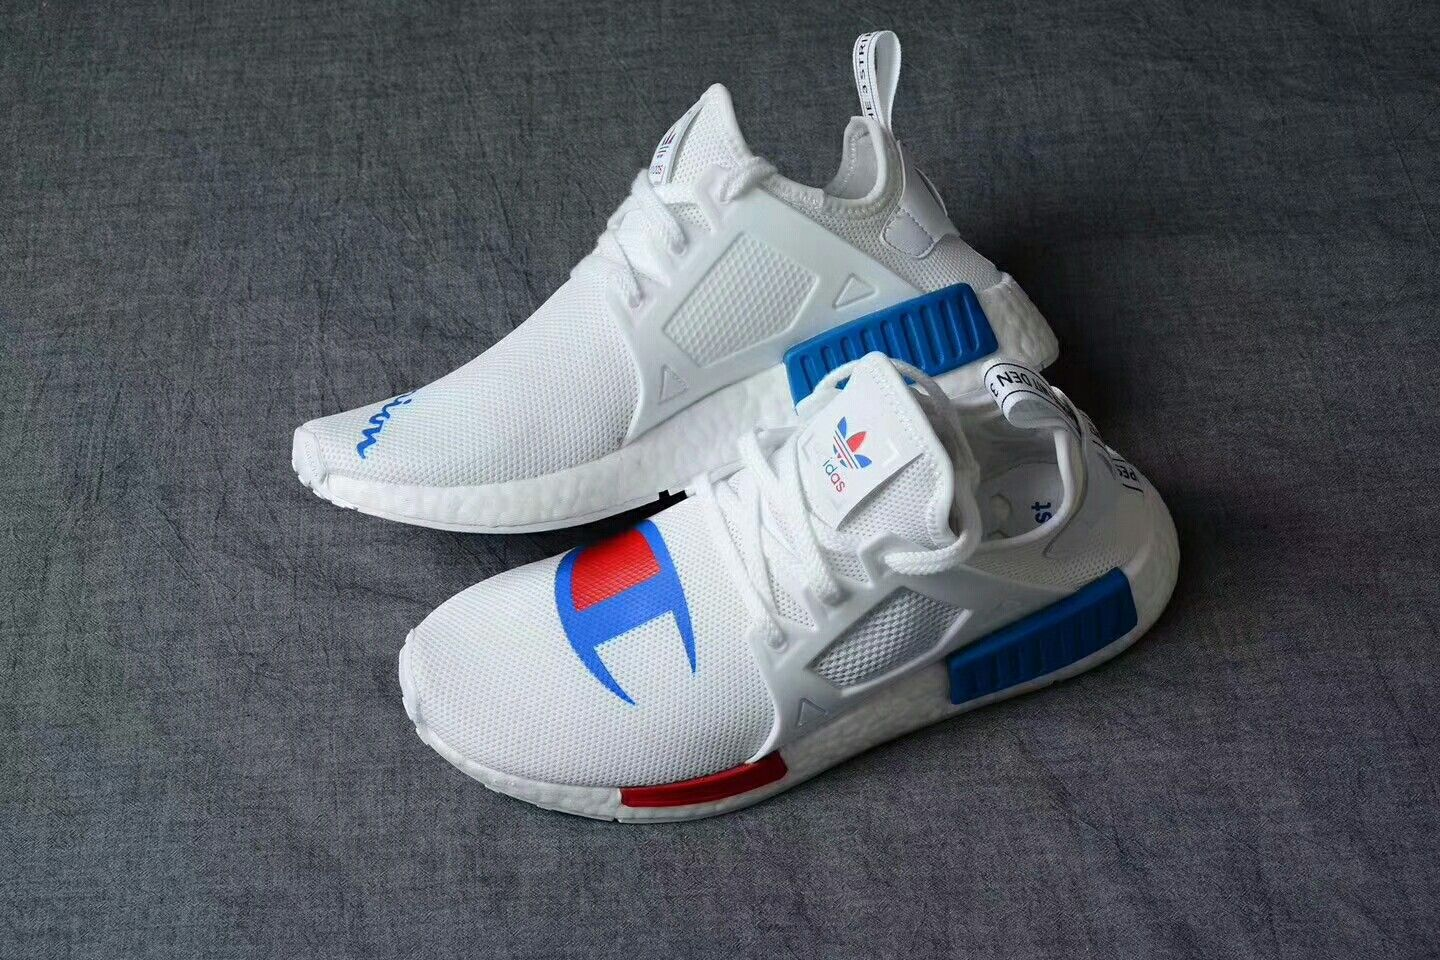 198a8424d71a0 adidas NMD XR1 x Champion   Size 36 - 45